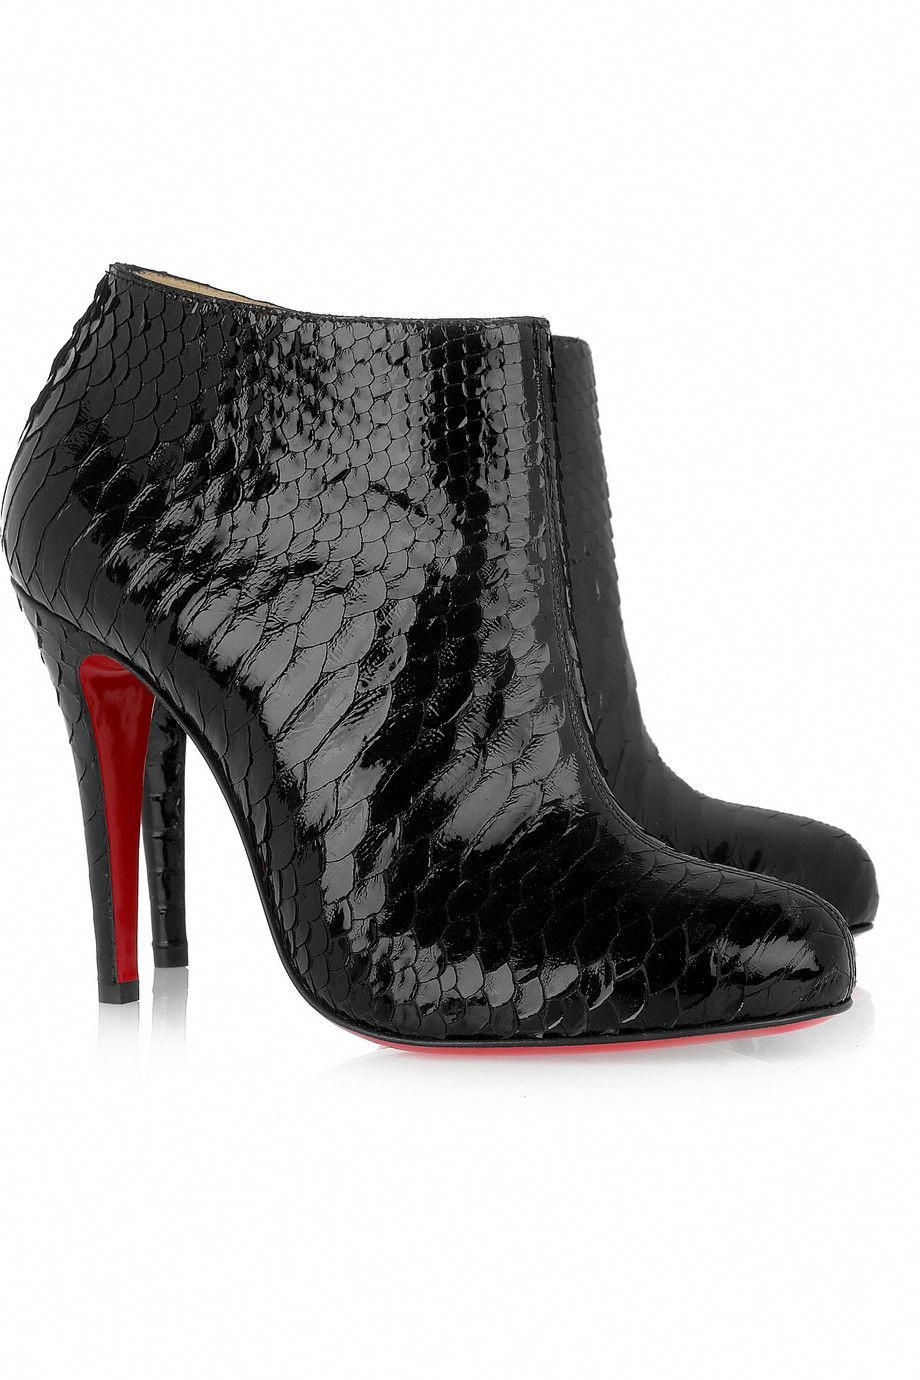 huge discount 30233 192f0 CHRISTIAN LOUBOUTIN Belle 100 glossed-python ankle boots ...